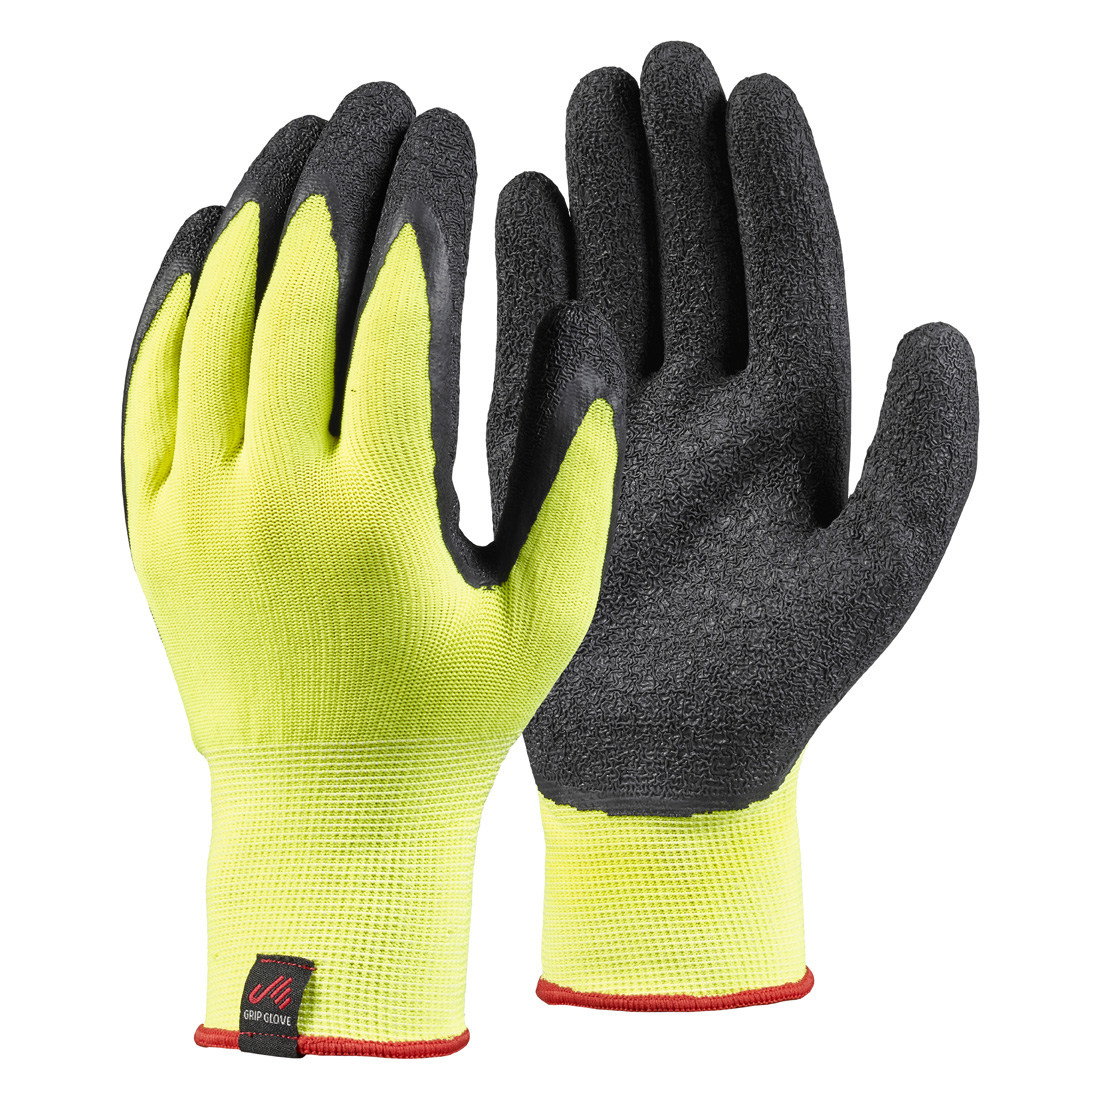 MUSTO DIPPED GRIP GLOVES (AUGL001)